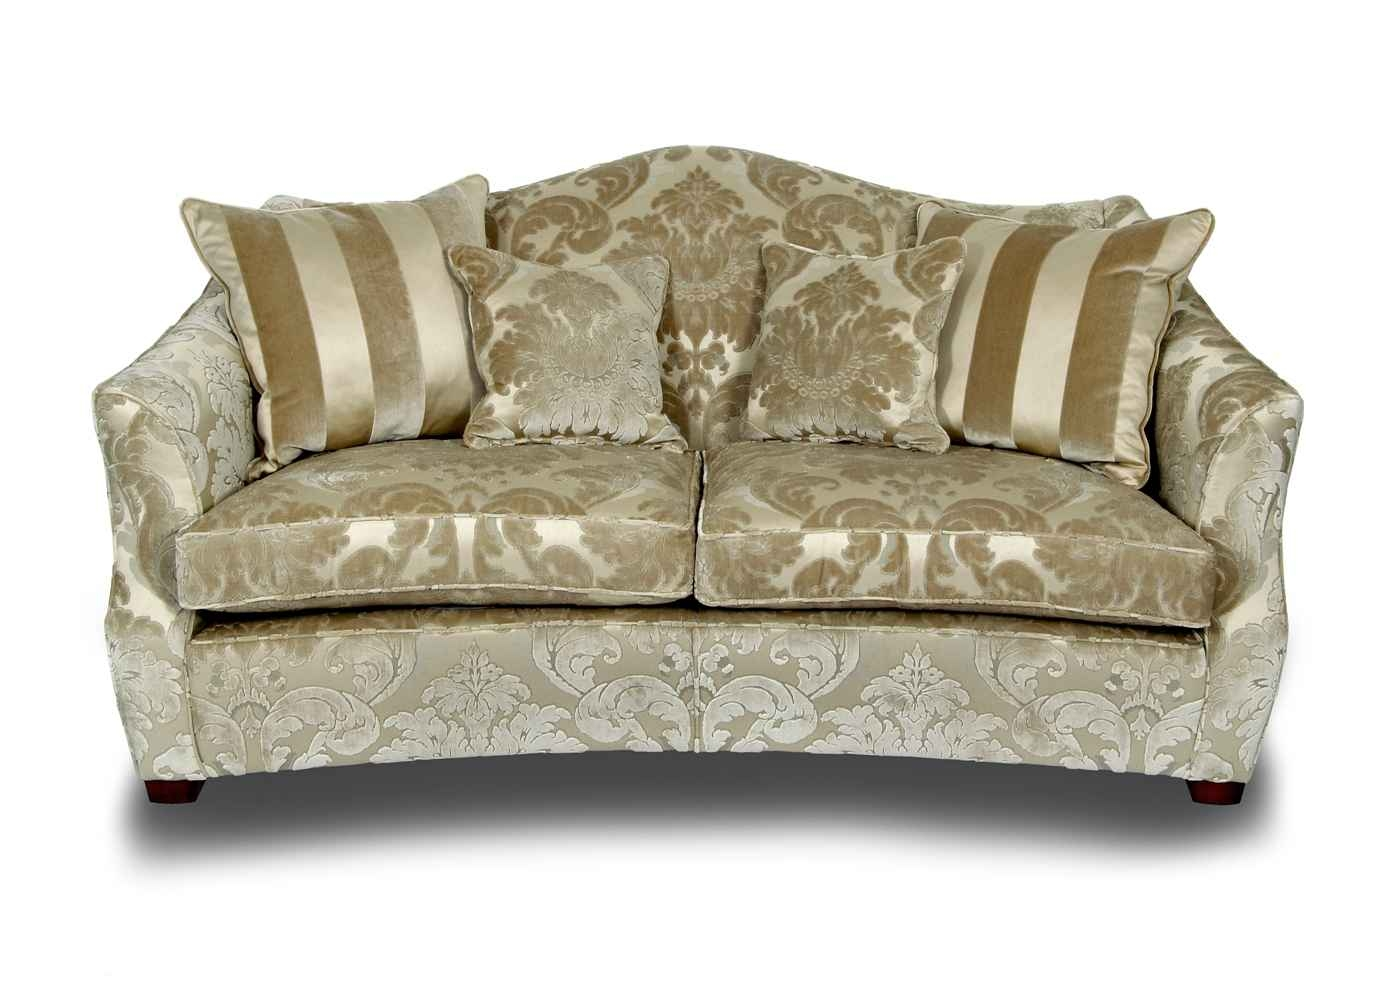 55 Fabric Sofas Living Room Fabric Three Cushion Sofa 7305 31 At Within Elegant Fabric Sofas (Image 2 of 15)